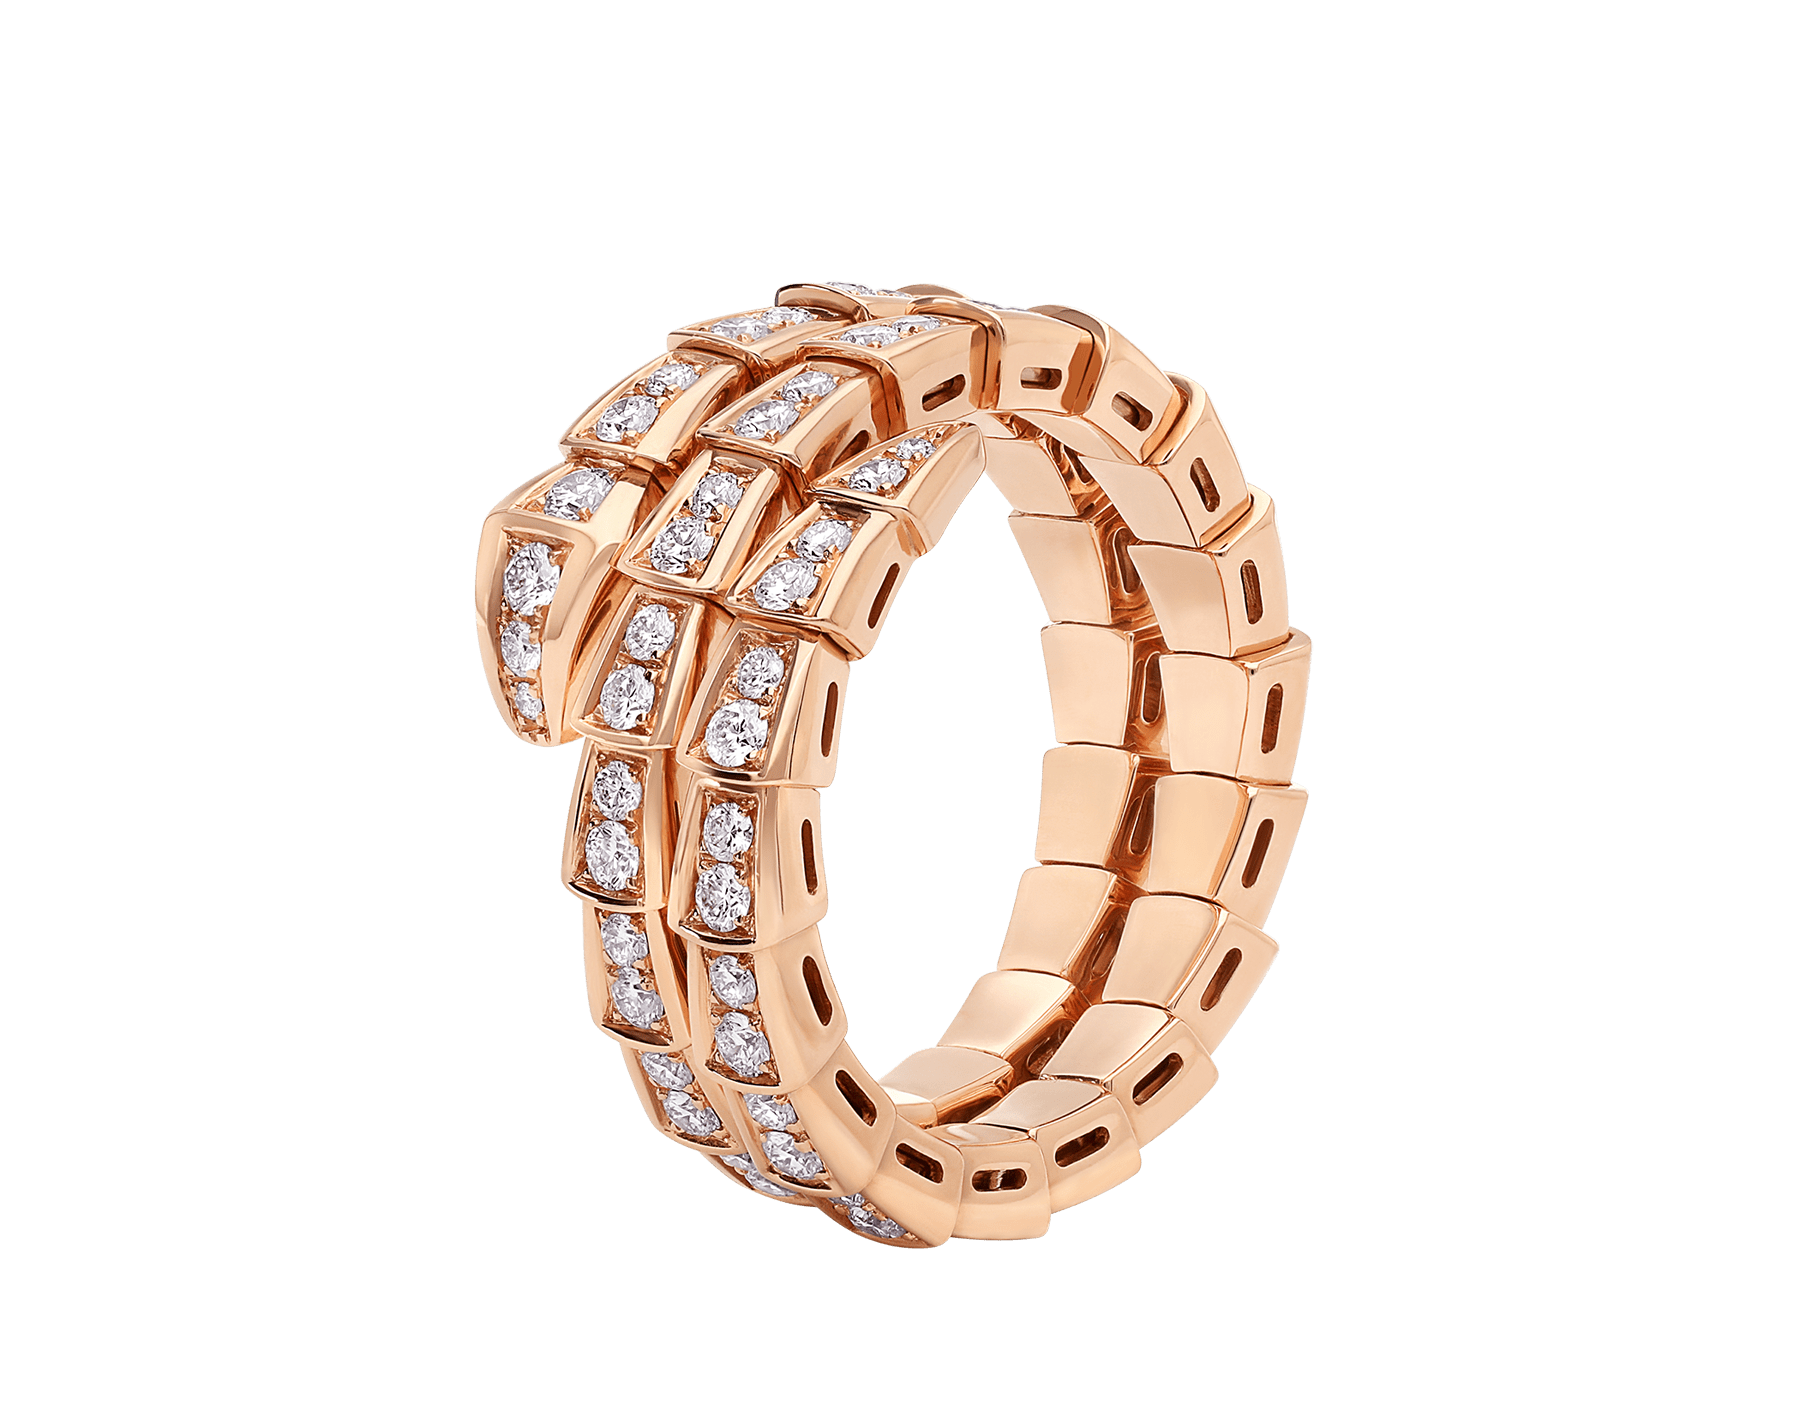 Serpenti Viper two-coil 18 kt rose gold ring set with pavé diamonds AN858794 image 1